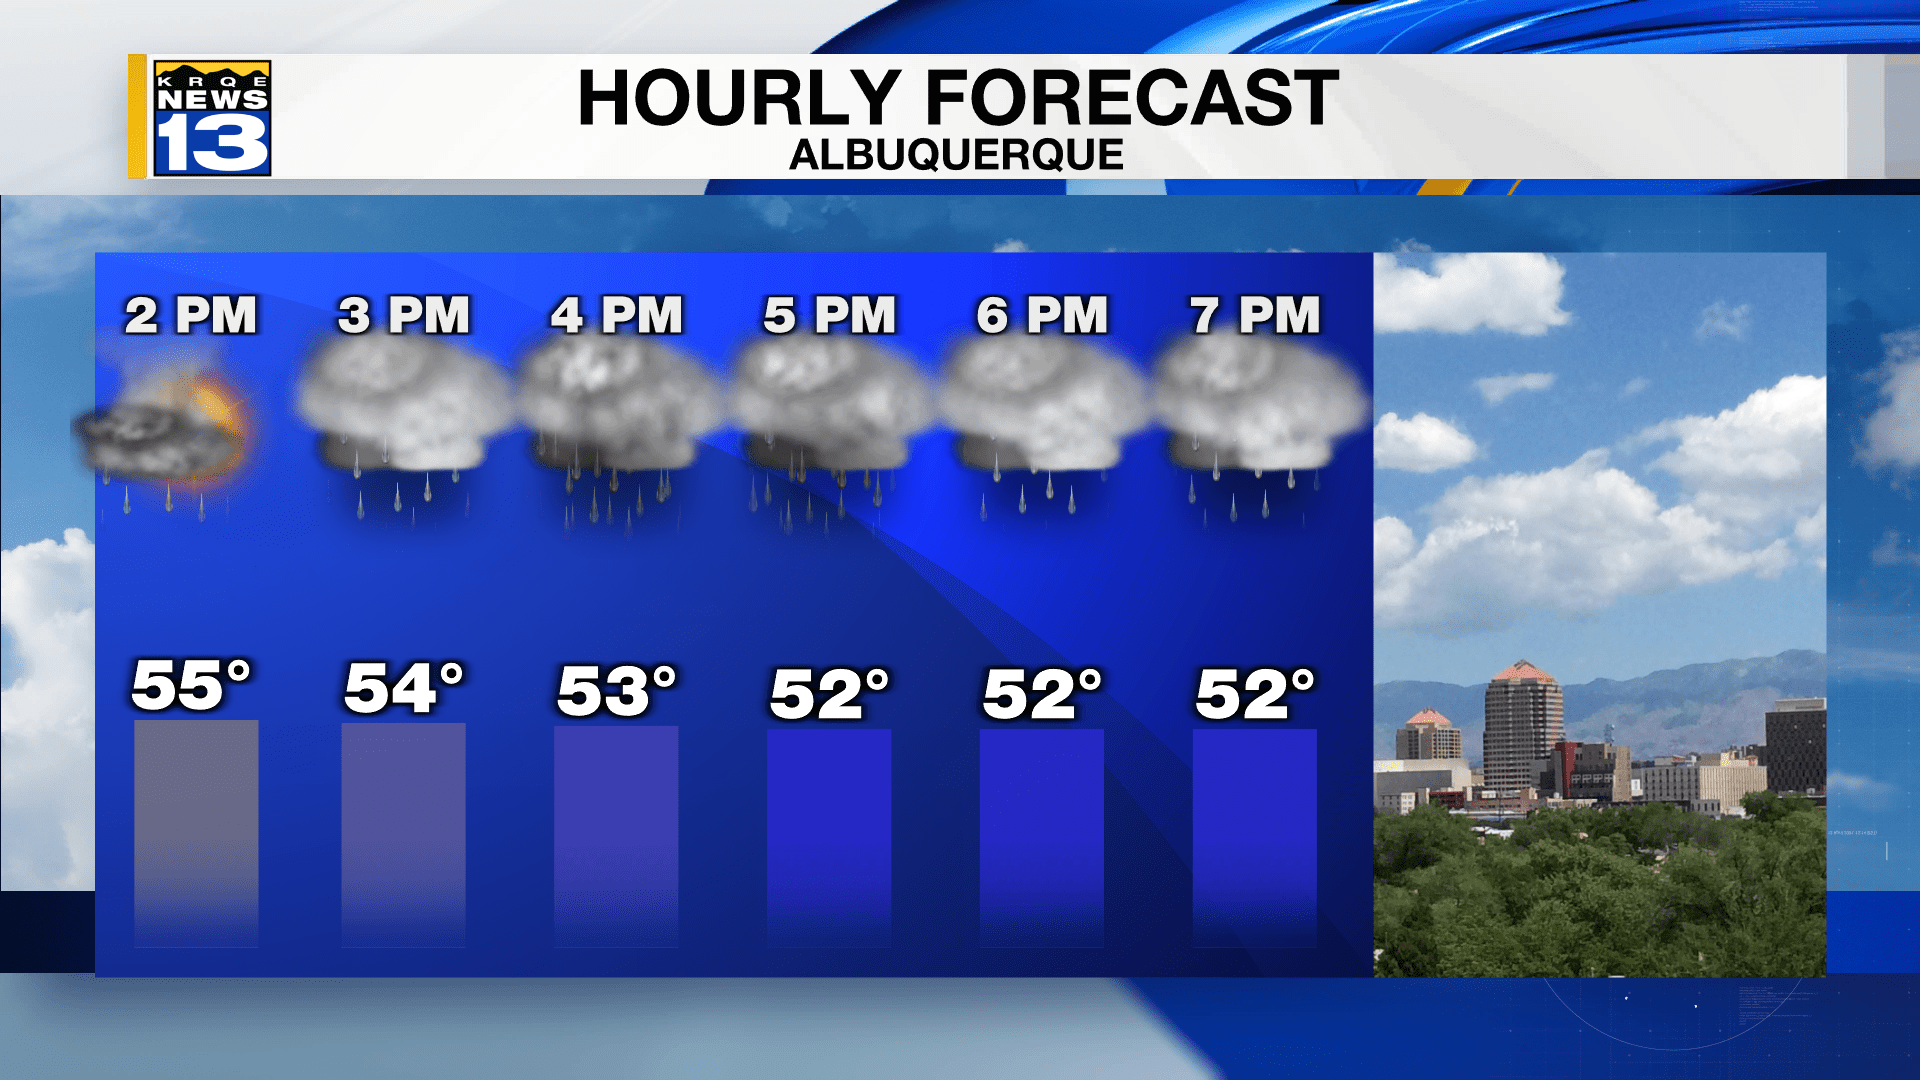 Albuquerque Hourly Forecast